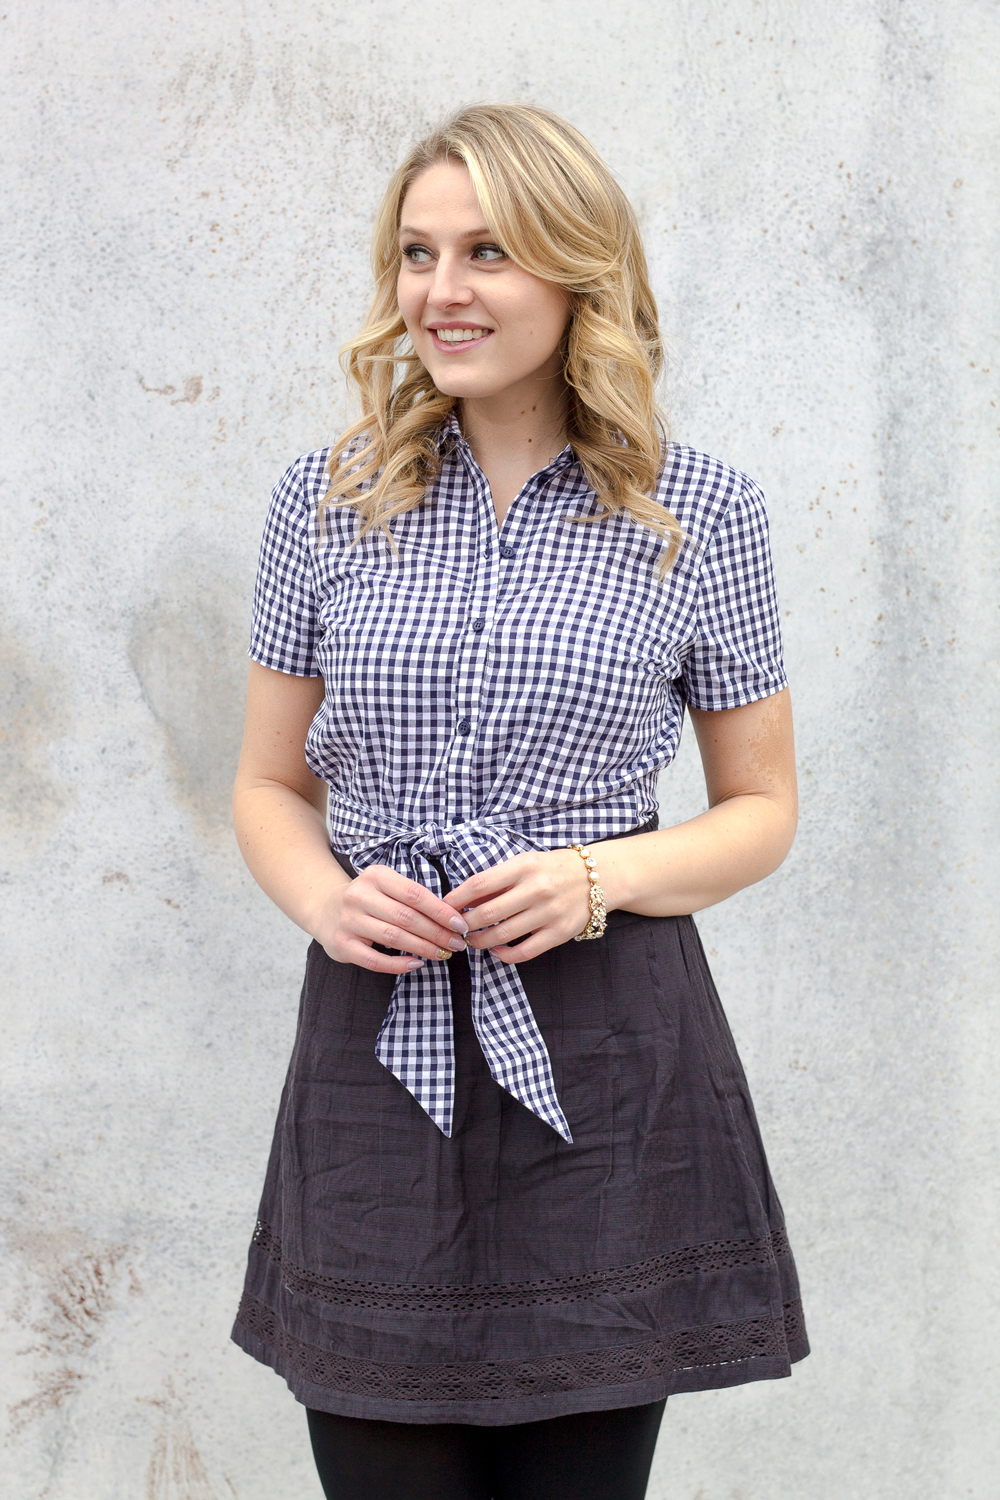 How to wear blue gingham print this winter season